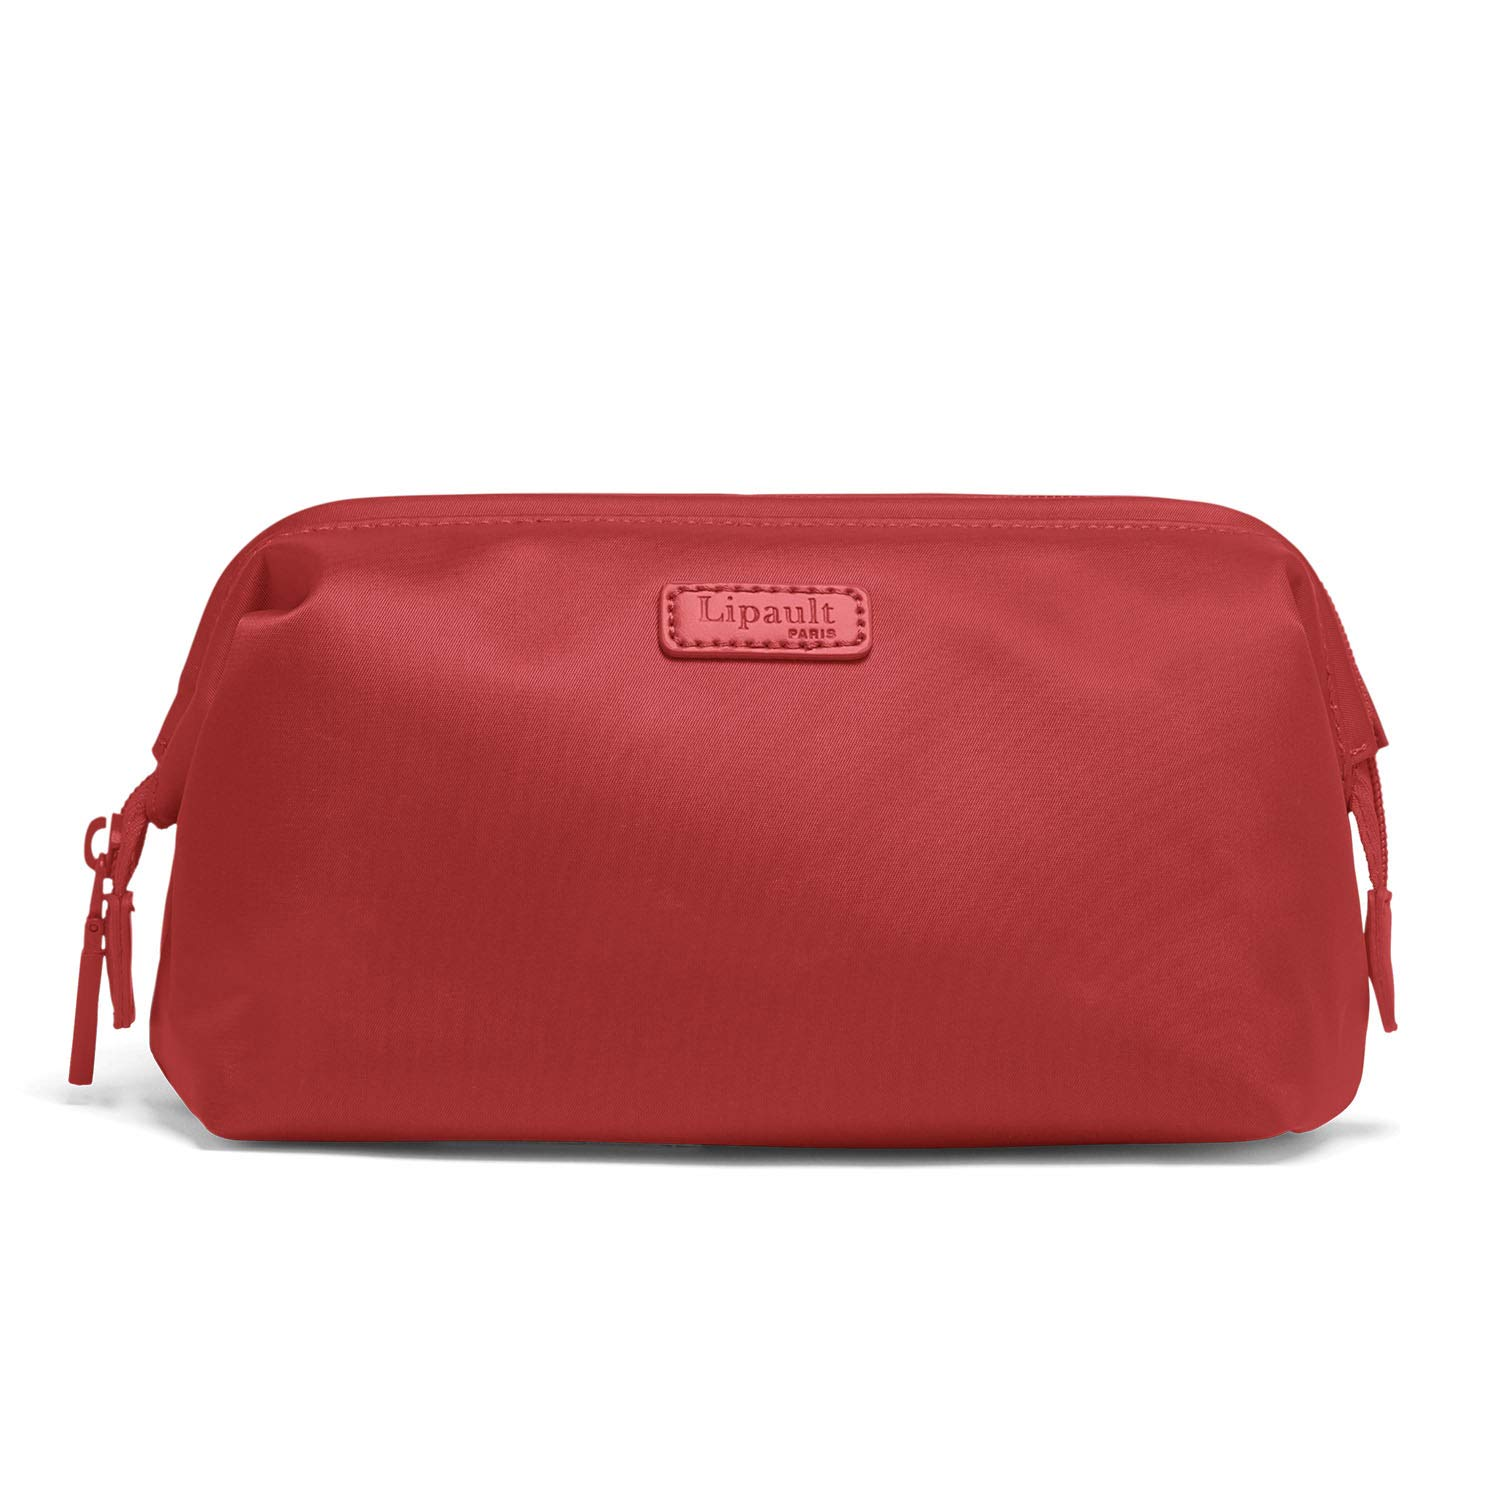 Lipault – Plume Accessories Toiletry Kit – Medium Compact Travel Organizer Bag for Women – Cherry Red